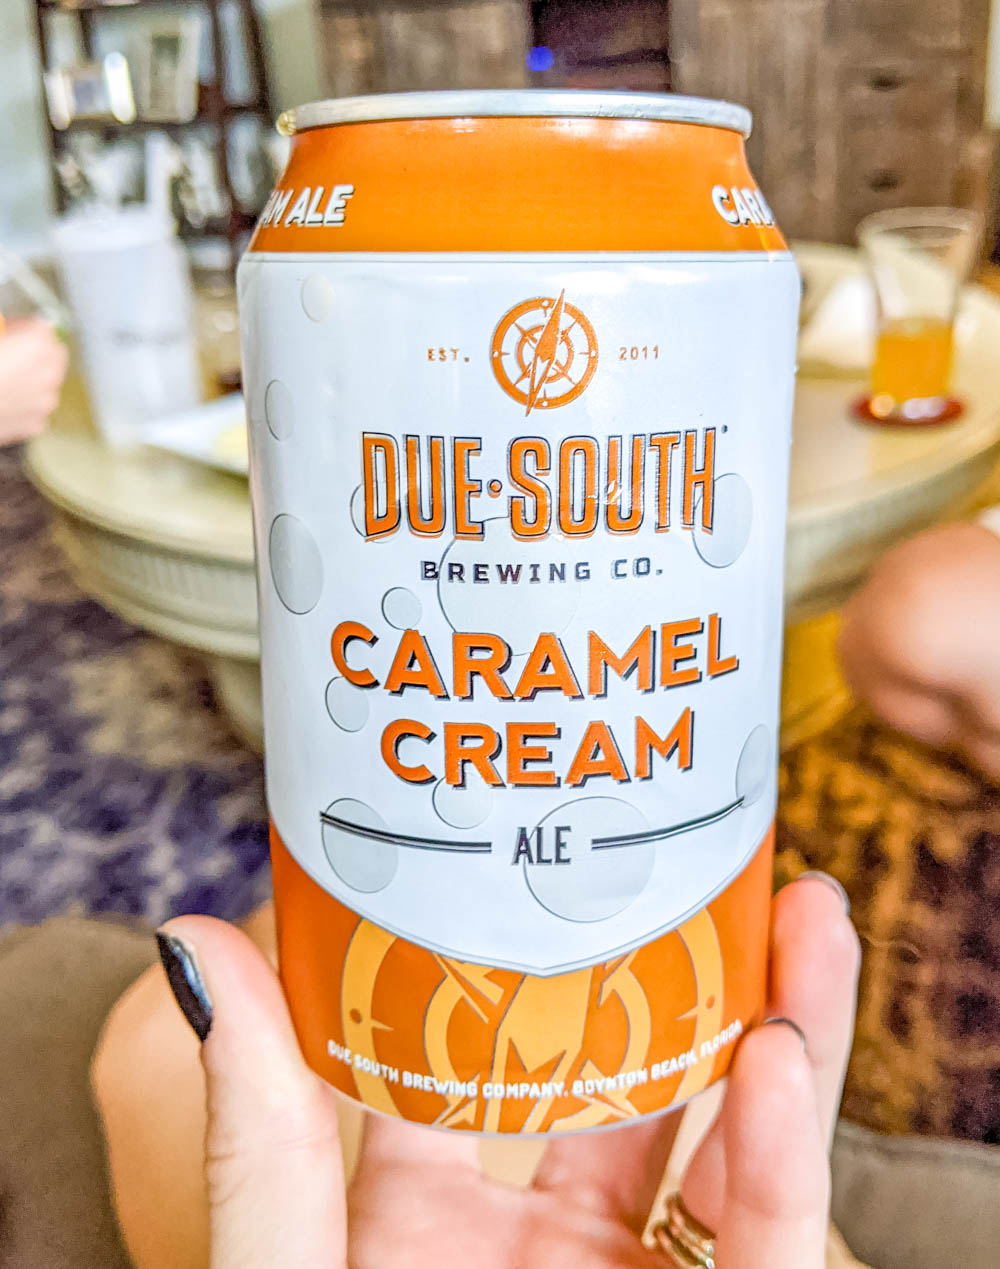 due south caramel cream ale | Awesome breweries in palm beach county, florida | craft beer and cider in west palm beach